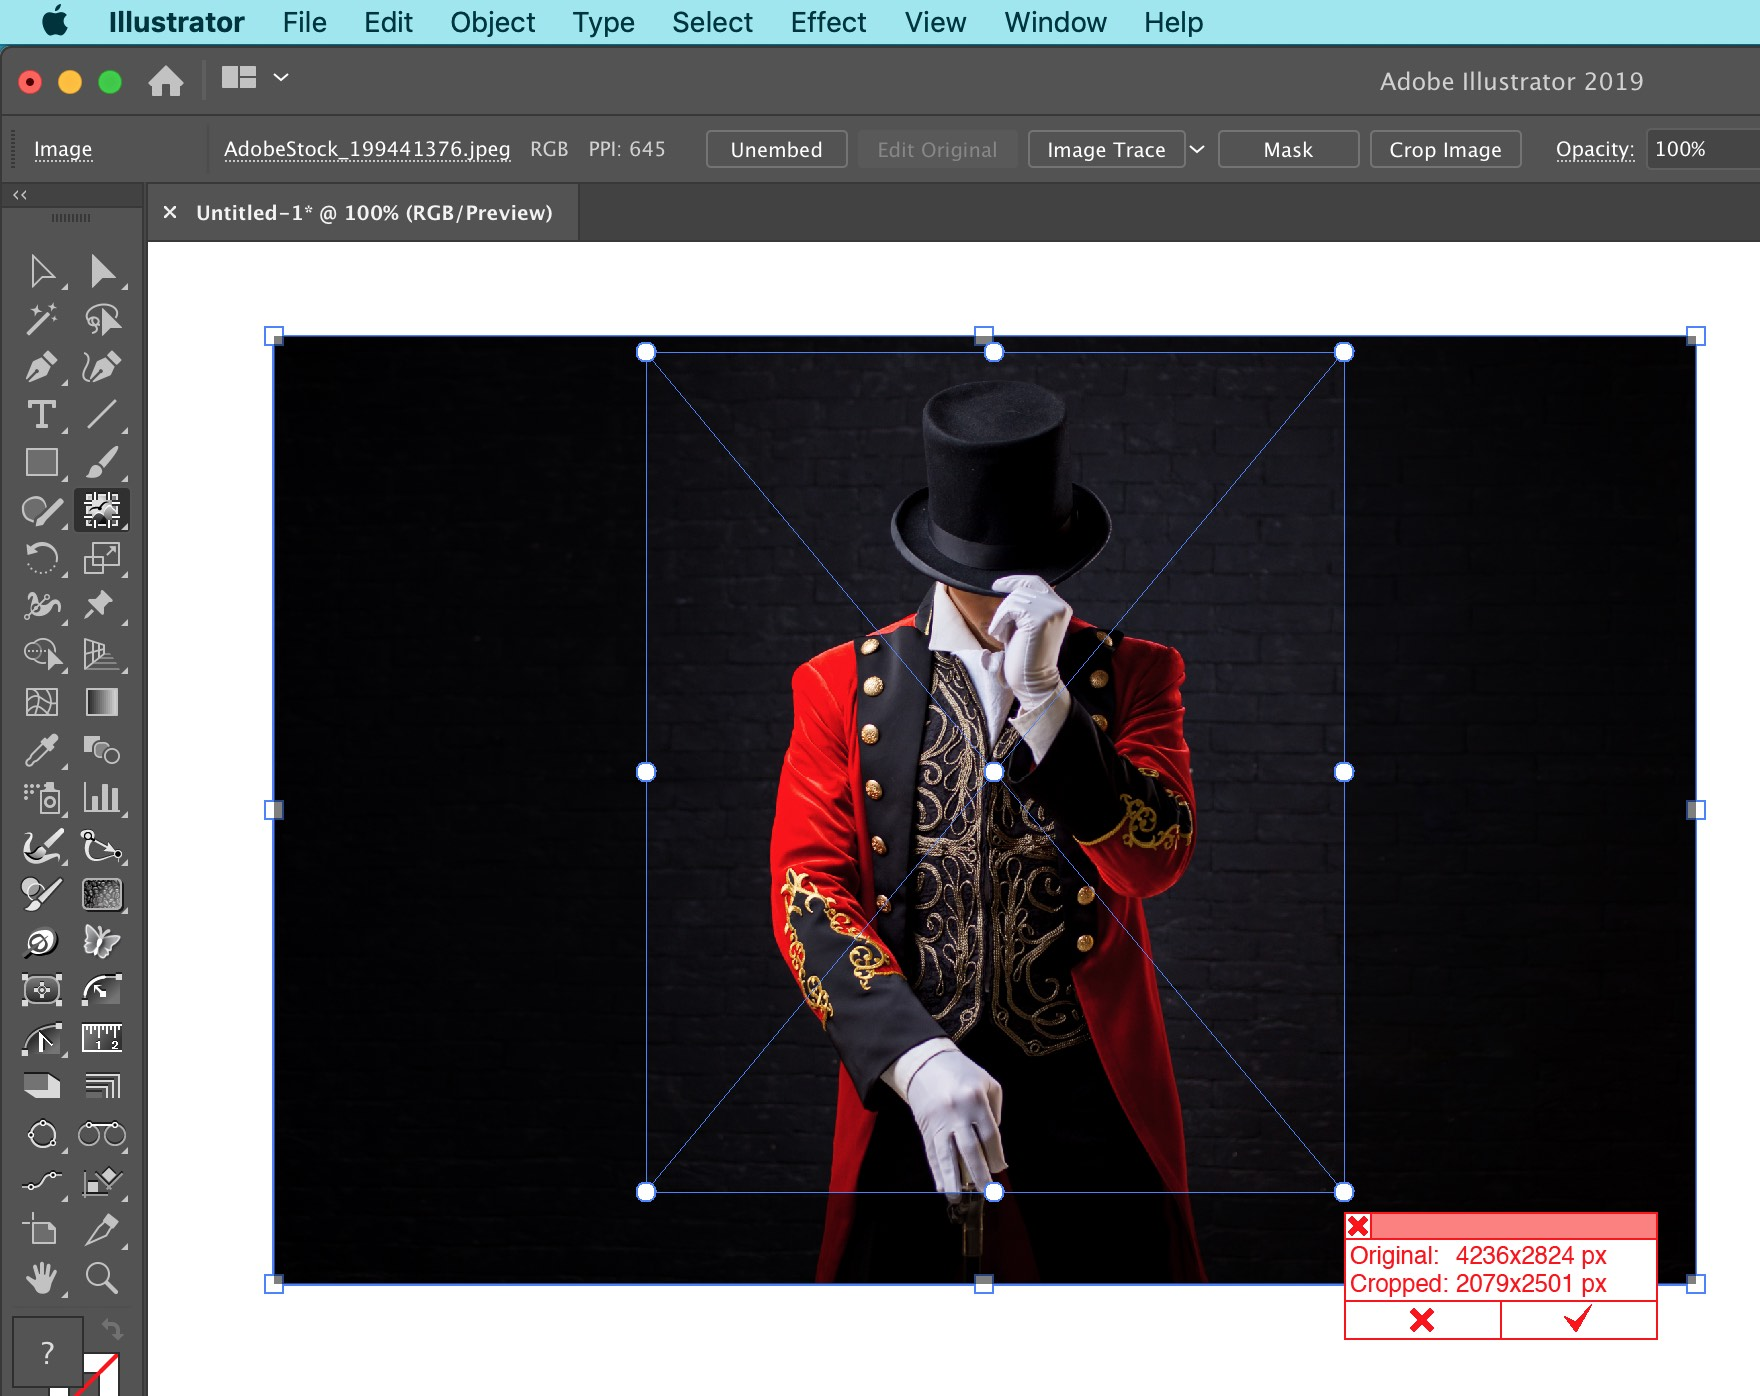 Rasterino Crop Image Tool in action